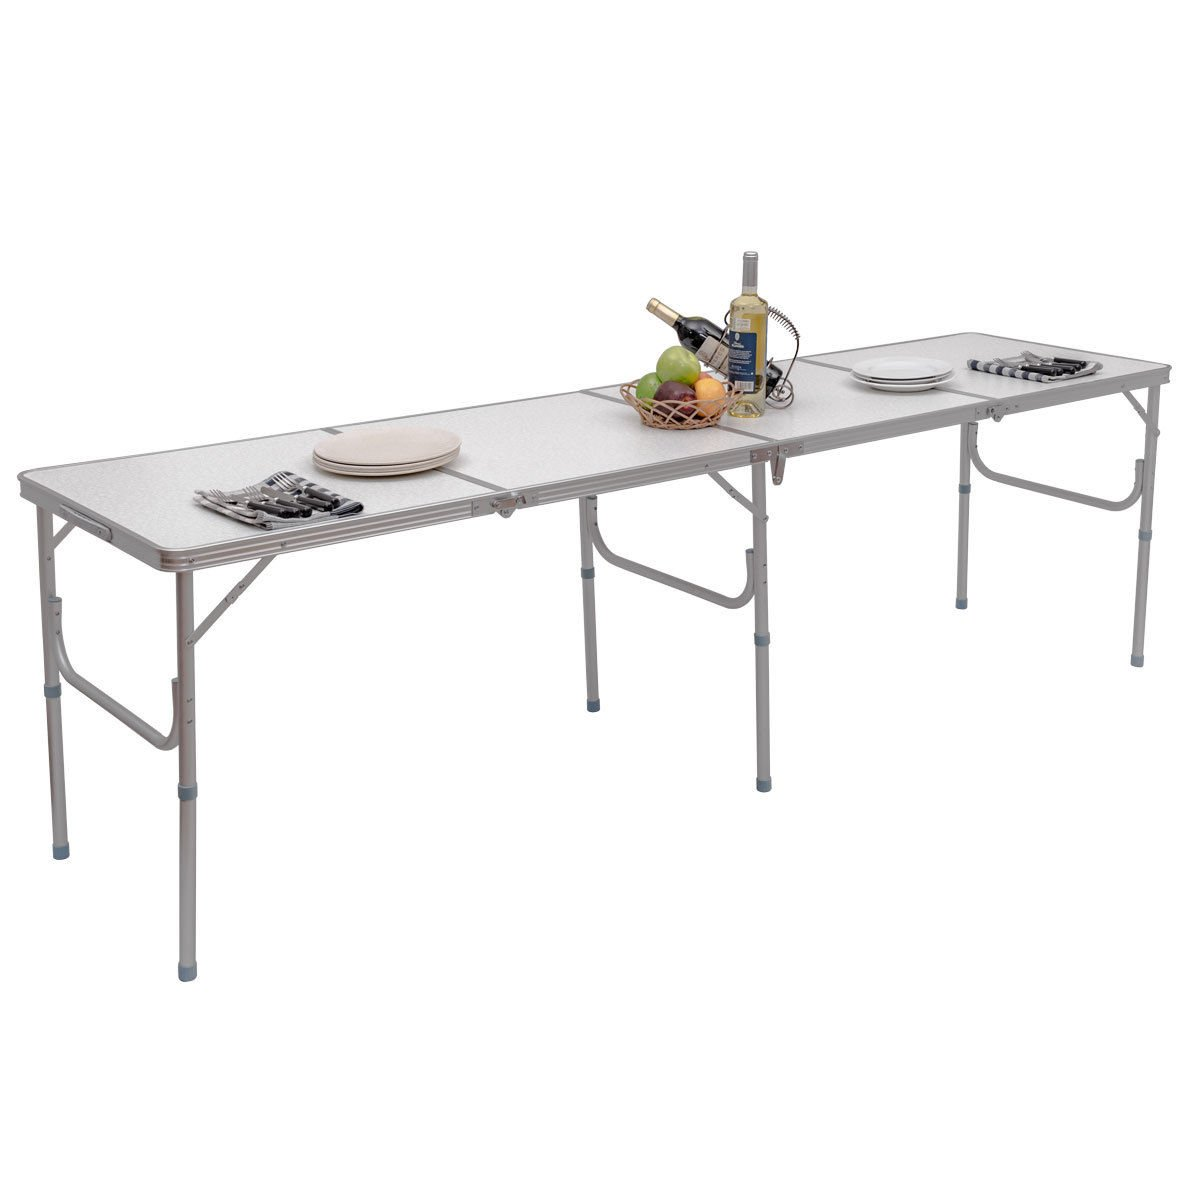 allgoodsdelight365 8FT Aluminum Folding Picnic Camping Table Lightweight In/Outdoor Garden Party